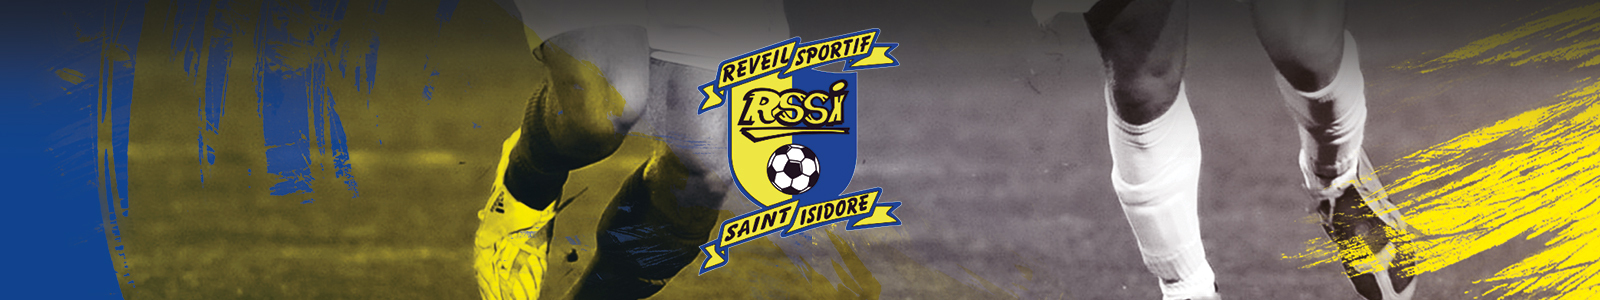 REVEIL SPORTIF SAINT ISIDORE : site officiel du club de foot de ST ISIDORE - footeo